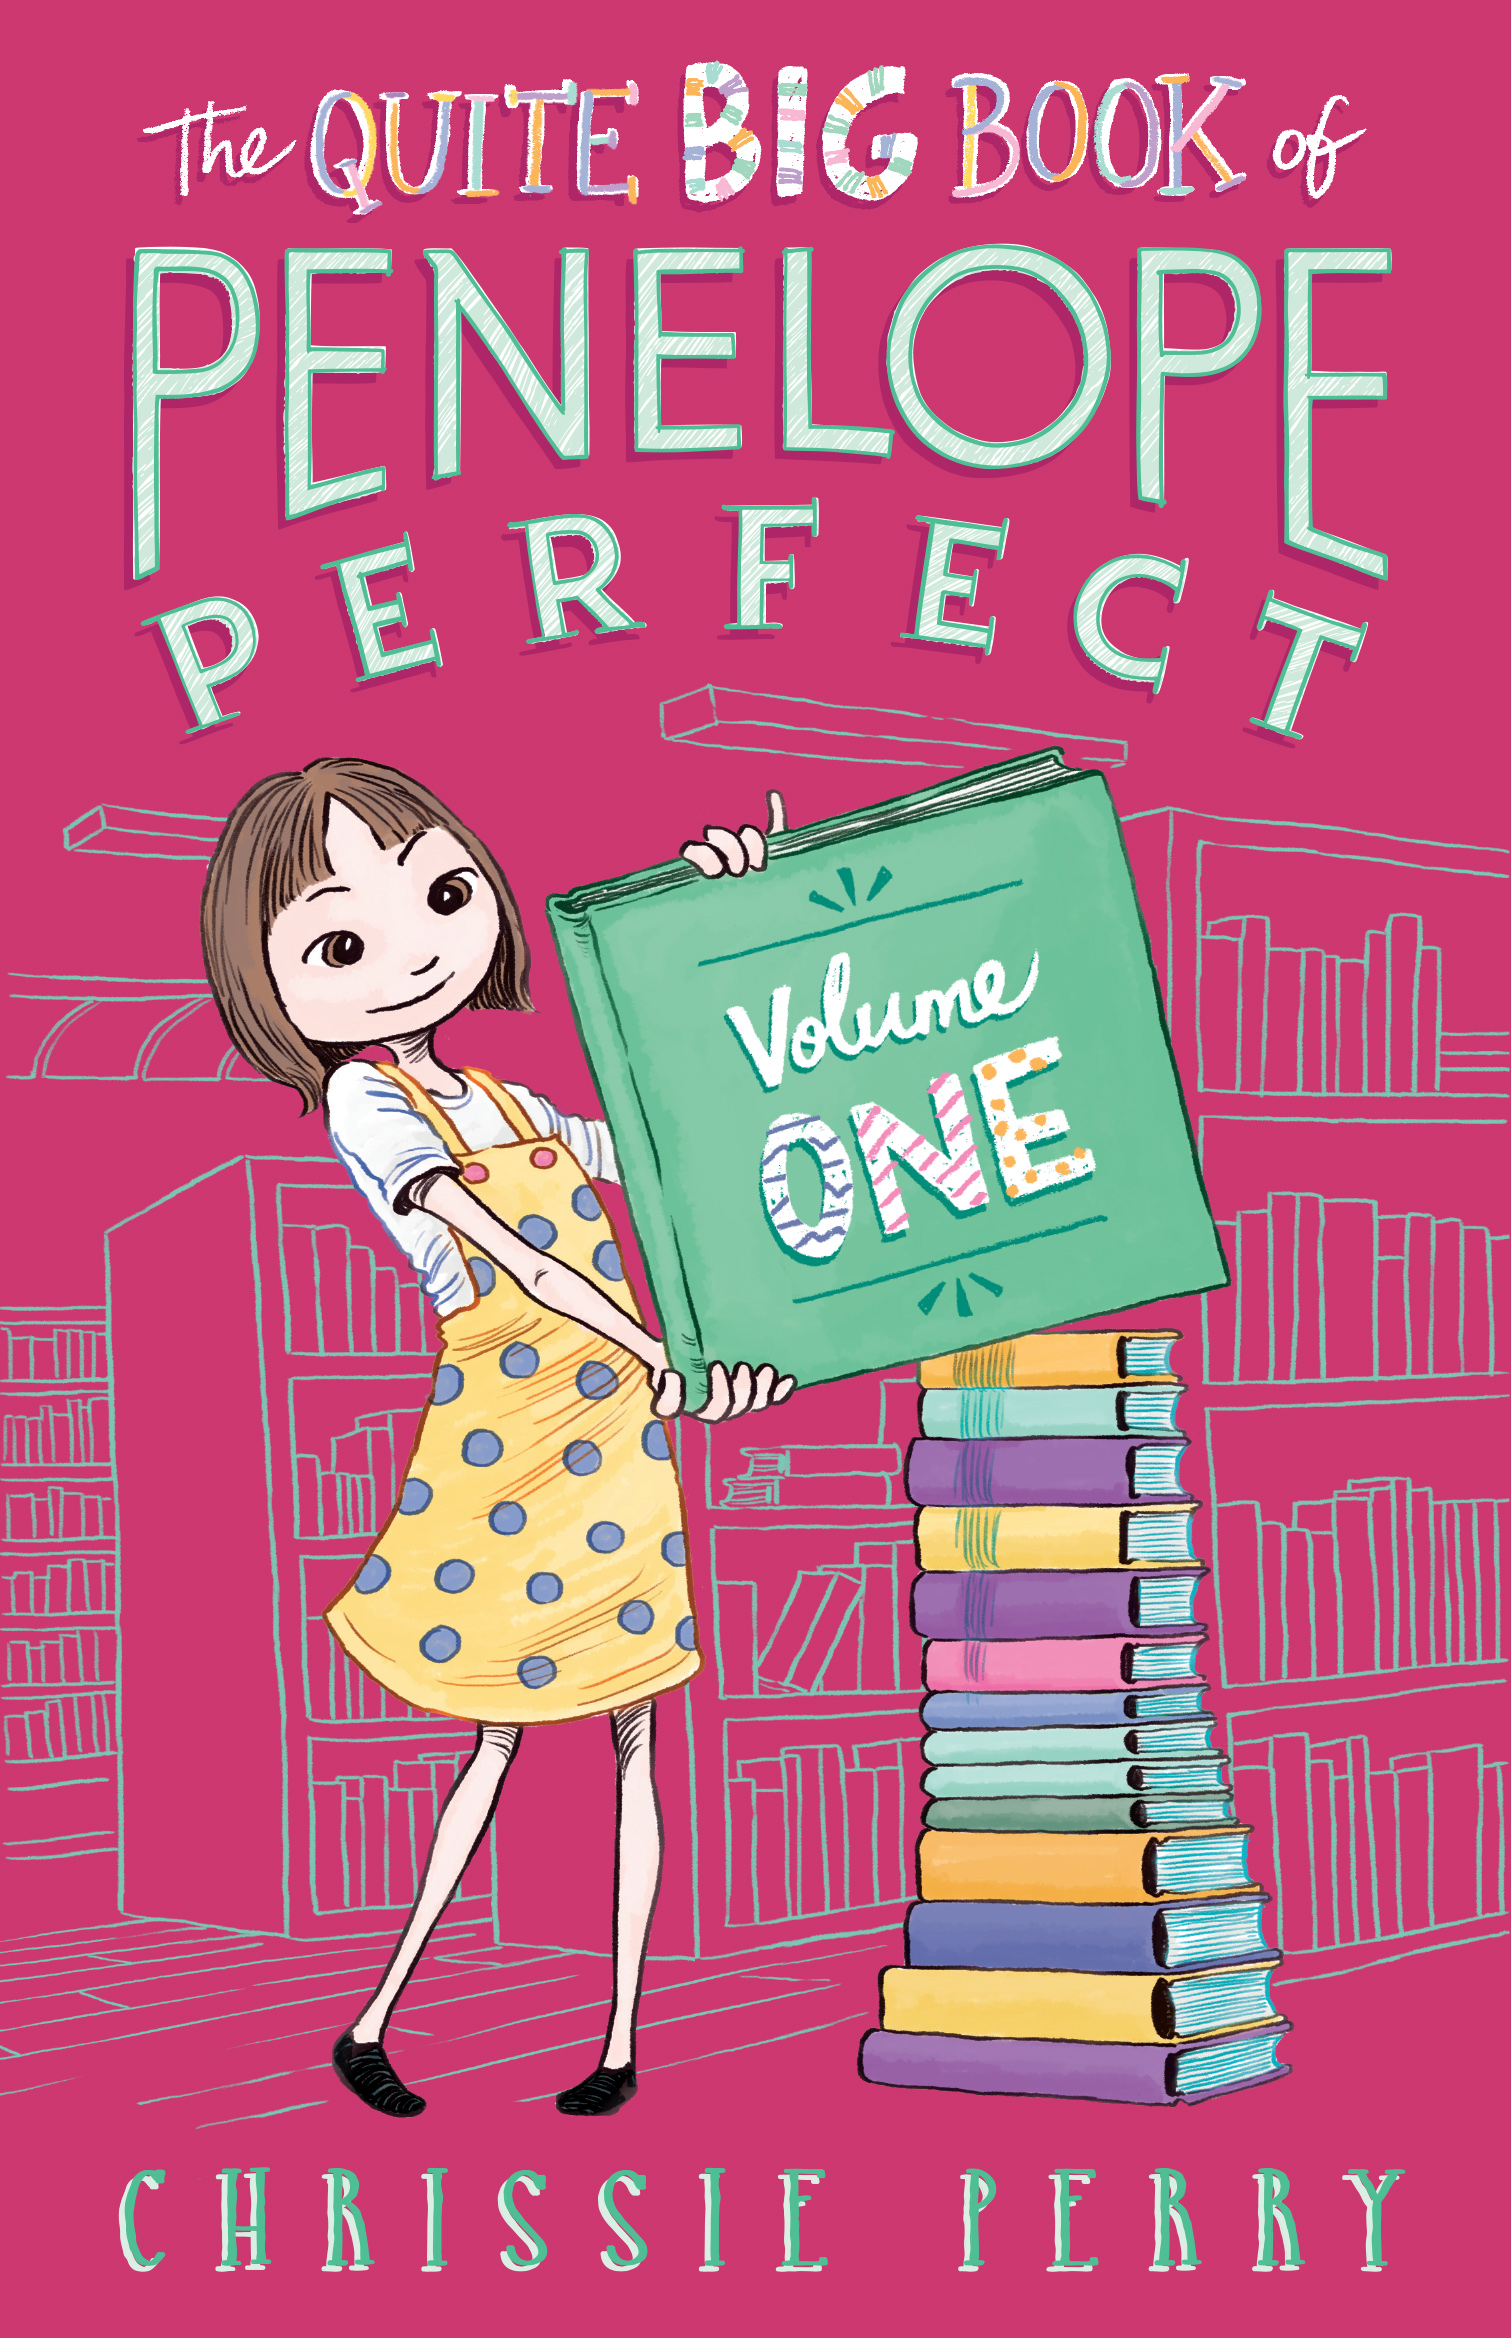 The Quite Big Book of Penelope Perfect: Volume 1